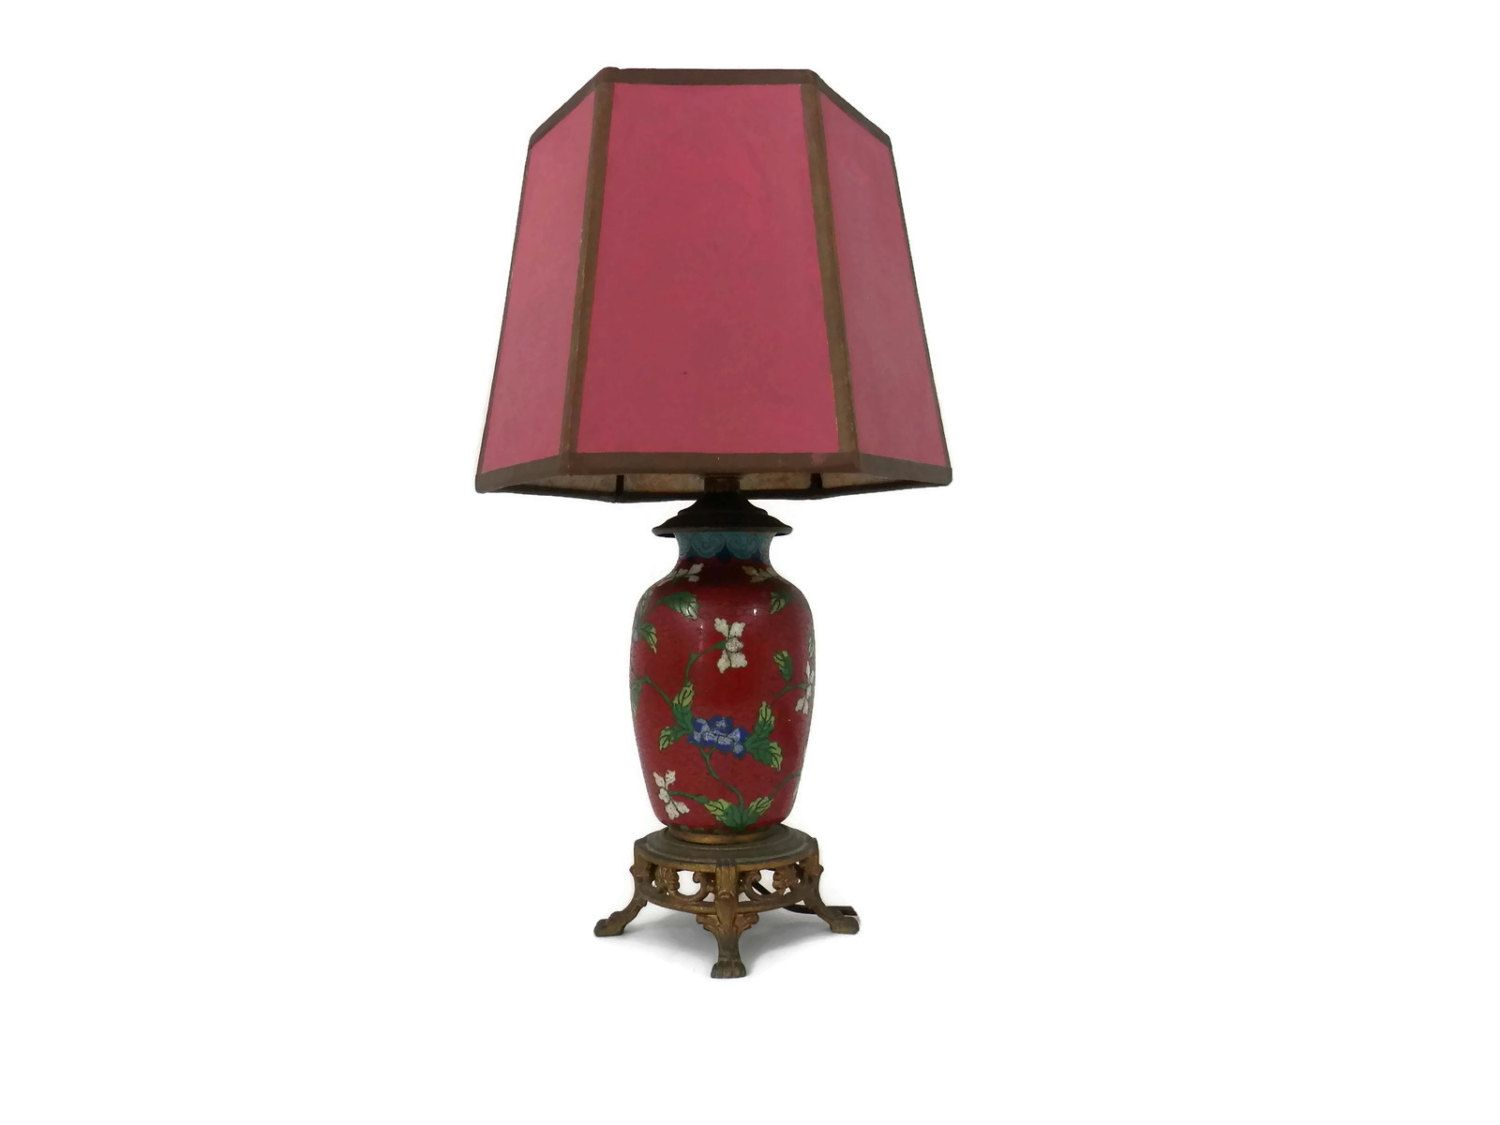 Chinese Cloisonne Lamp W/Original Shade Pigeon Blood Red And White And Blue  Flowers